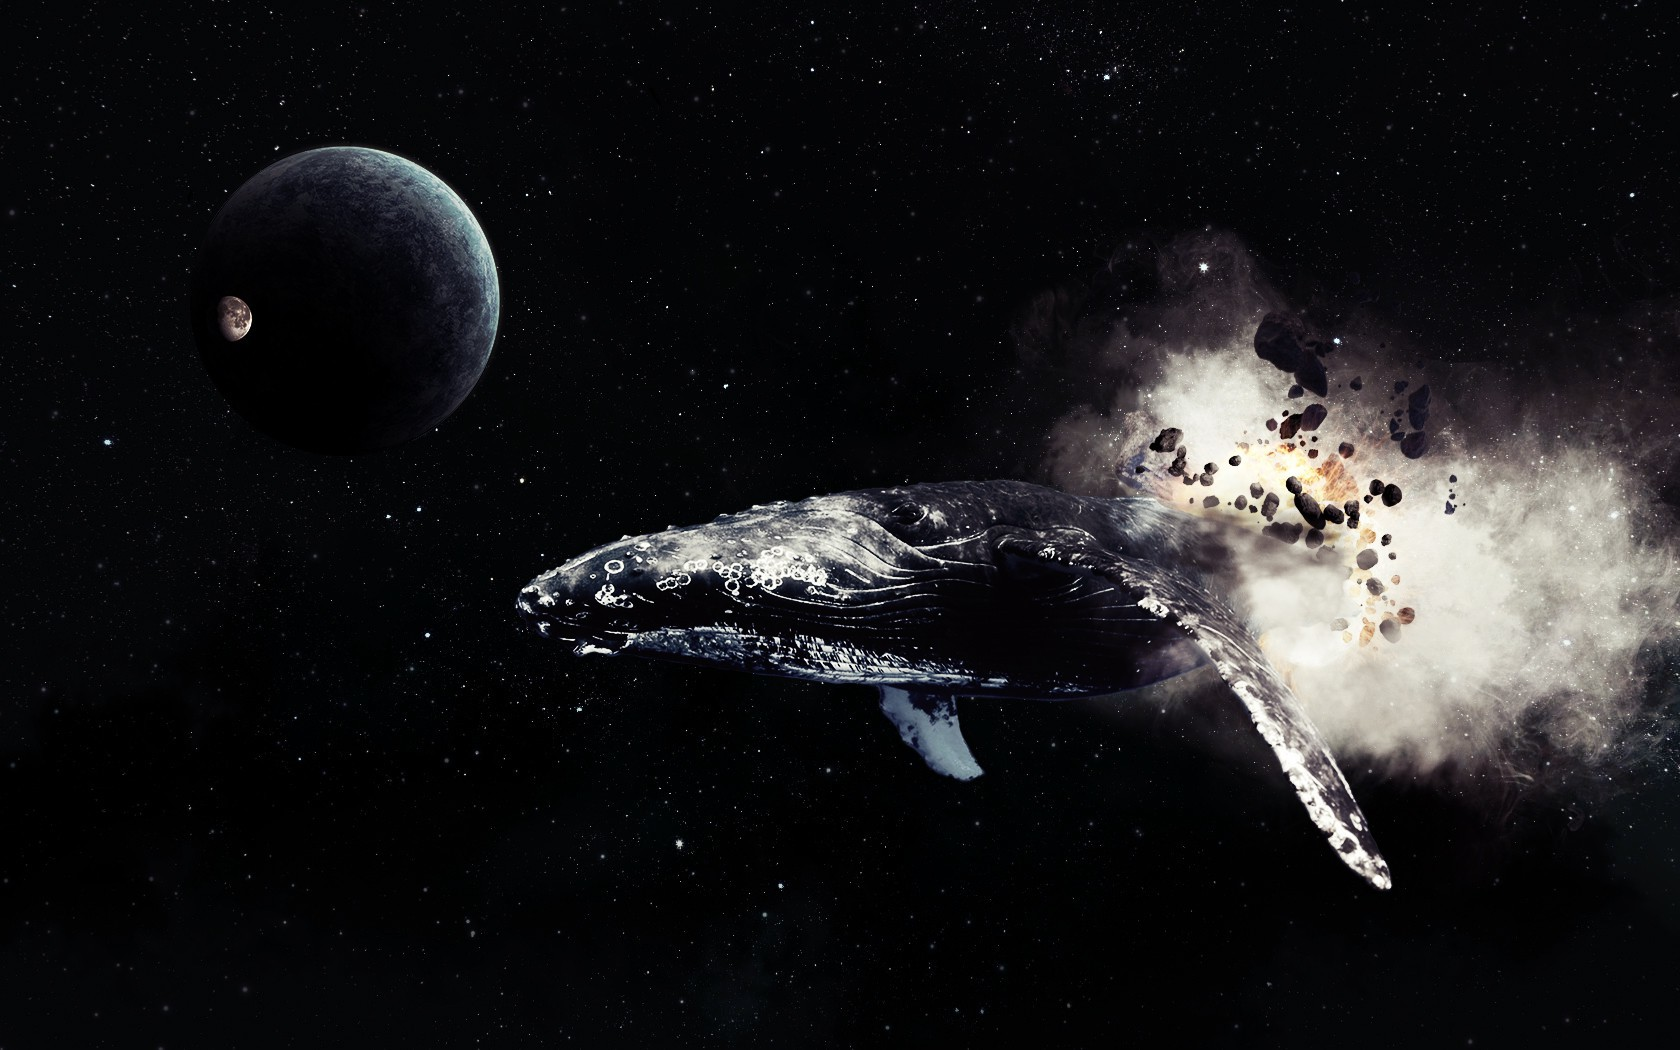 Hd Love Wallpapers For Mobile Free Download Space Stars Planet Moon Whale Comet Wallpapers Hd